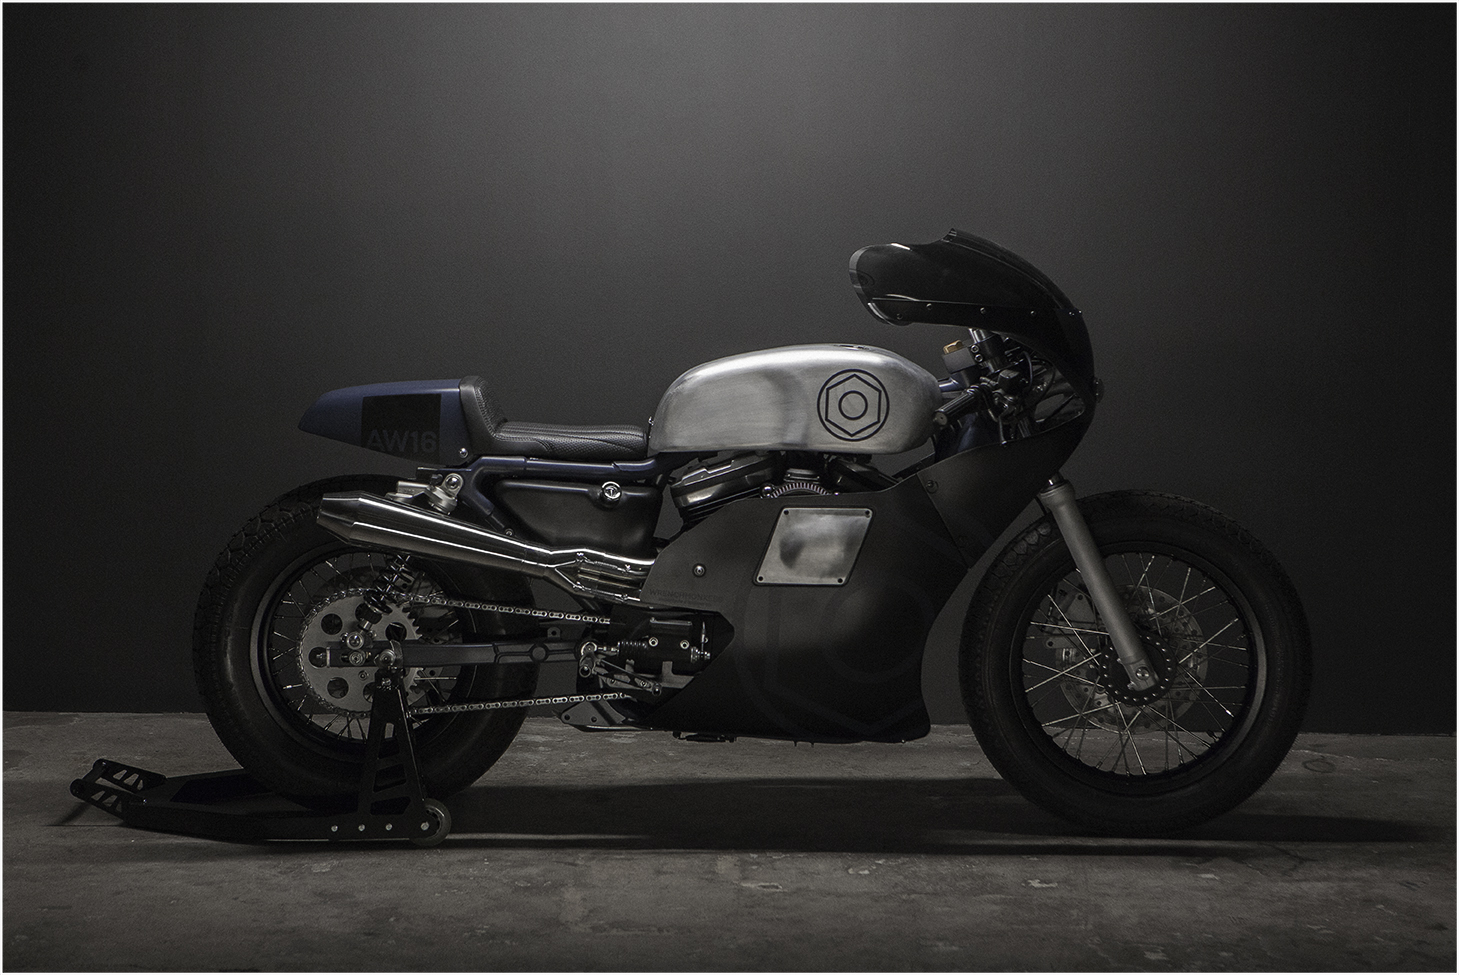 Each year we build a motorcycle, which is both inspired by and inspiration for the current year's collections. On this picture is the Wrenchmonkees AW16 bike made for the 2016 collections.